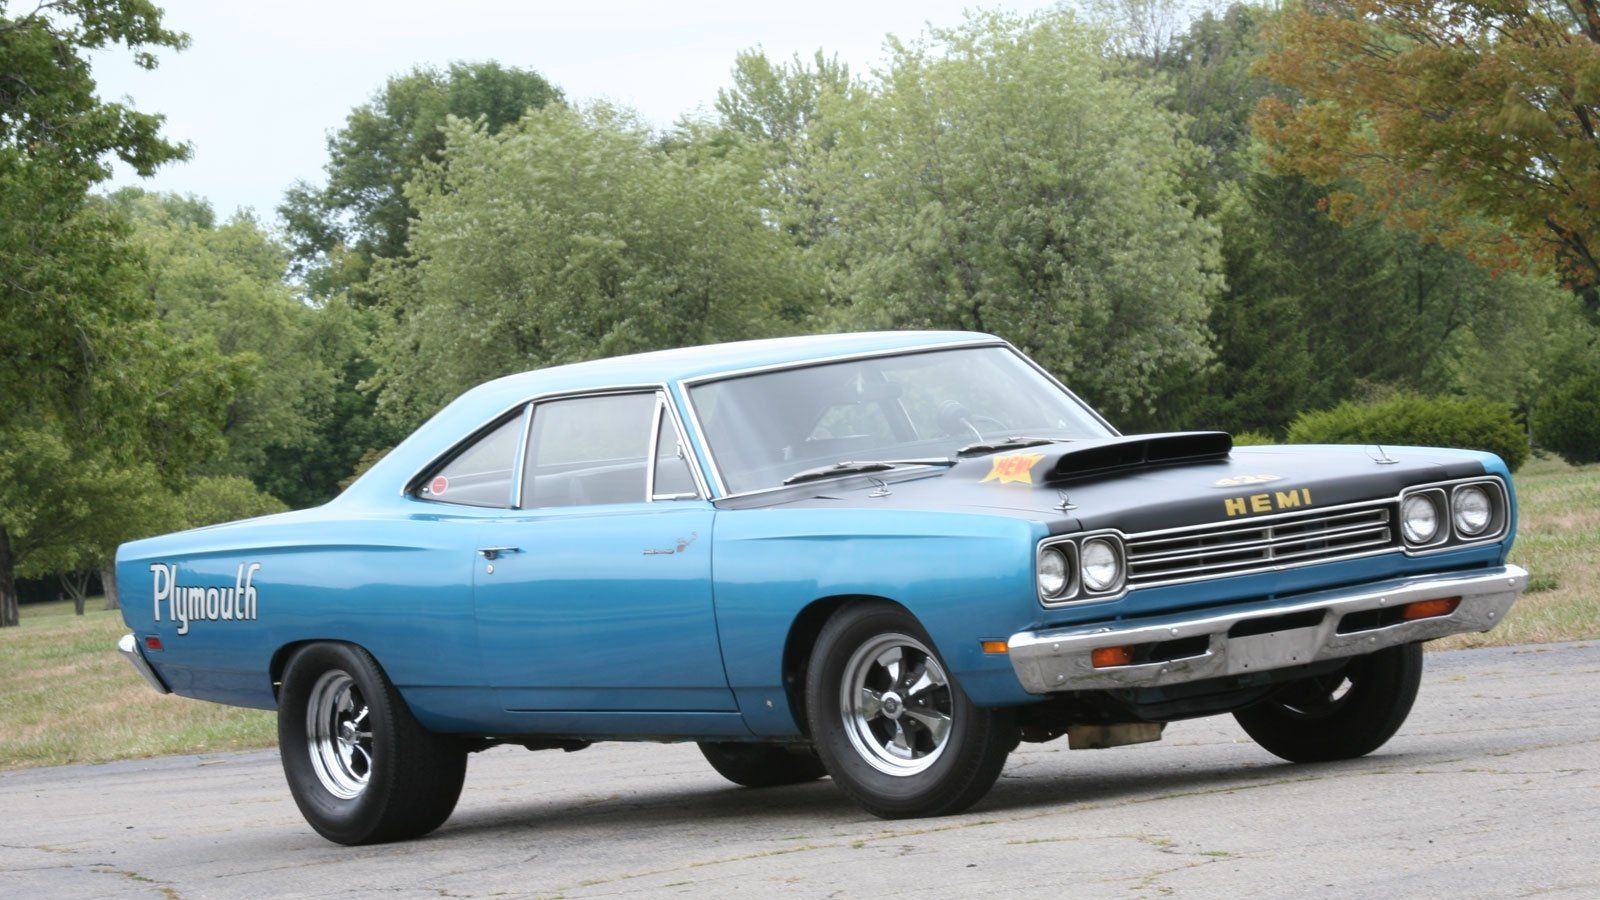 1600x900 - Plymouth Road Runner Wallpapers 8